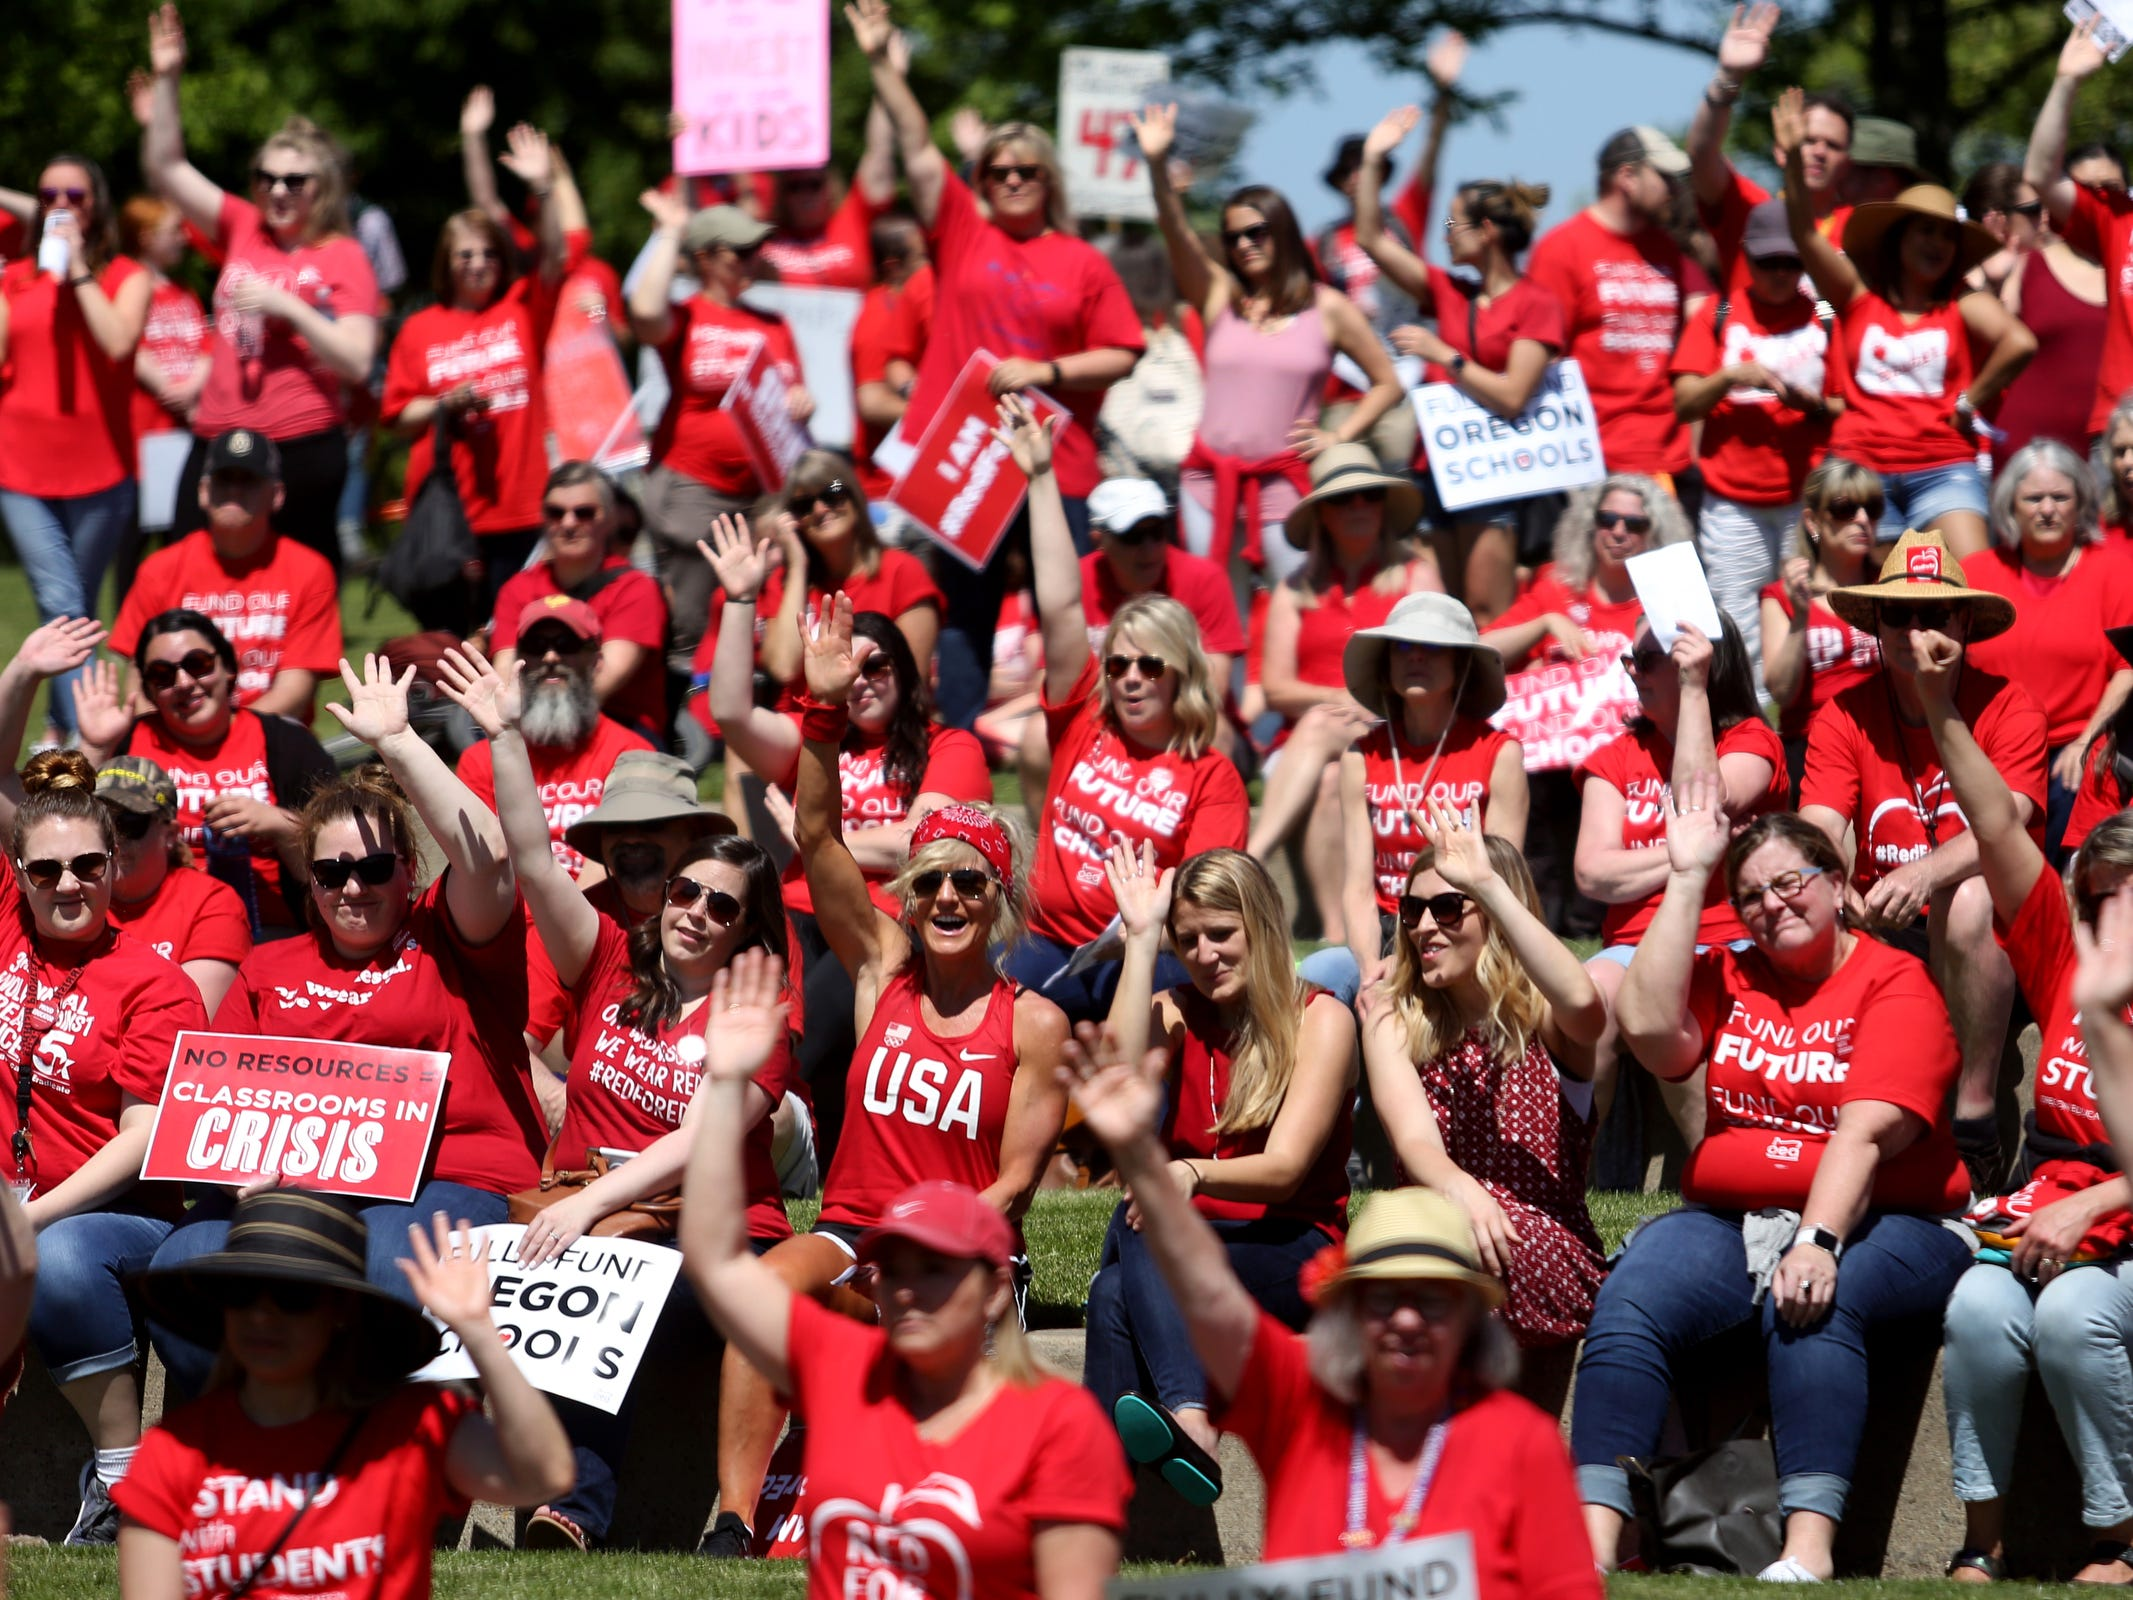 More than 1,000 teachers and education activists rally for a day of action starting at Riverfront Park in Salem on May 8, 2019. Schools across Oregon closed early or were closed for the day as teachers walked out to demand more school funding to address large class sizes, low graduation rates and other concerns.